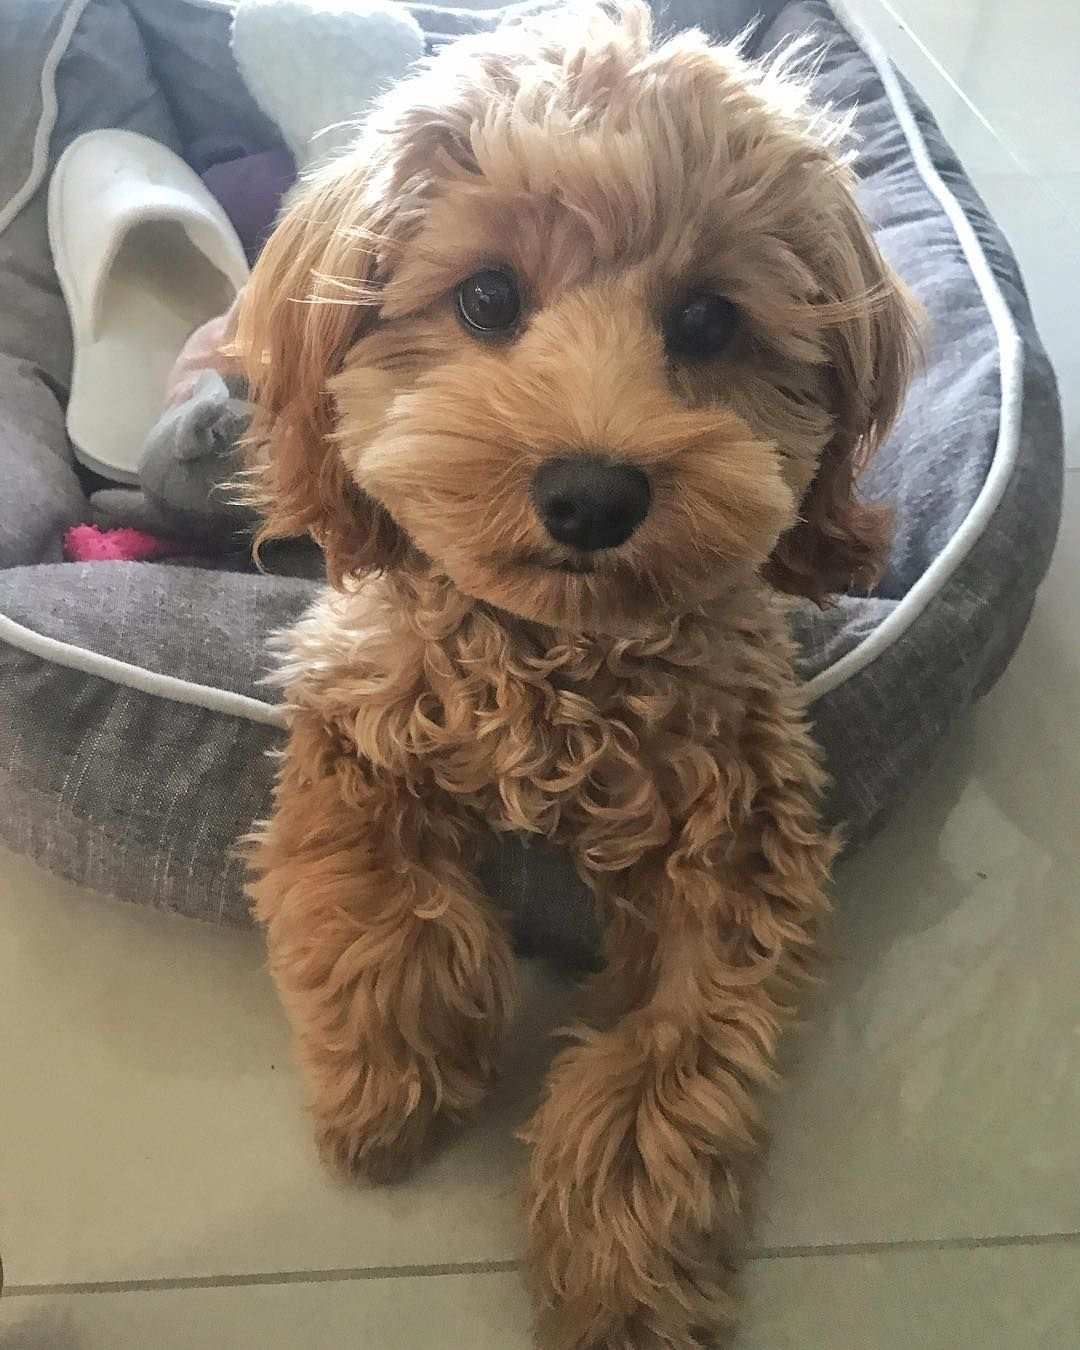 Peaches The Cavoodle On Instagram My Face When My Hoomans Make Up Yet Another Nickname For Me Some Of Teddy Bear Dog Beautiful Puppy Small Puppies